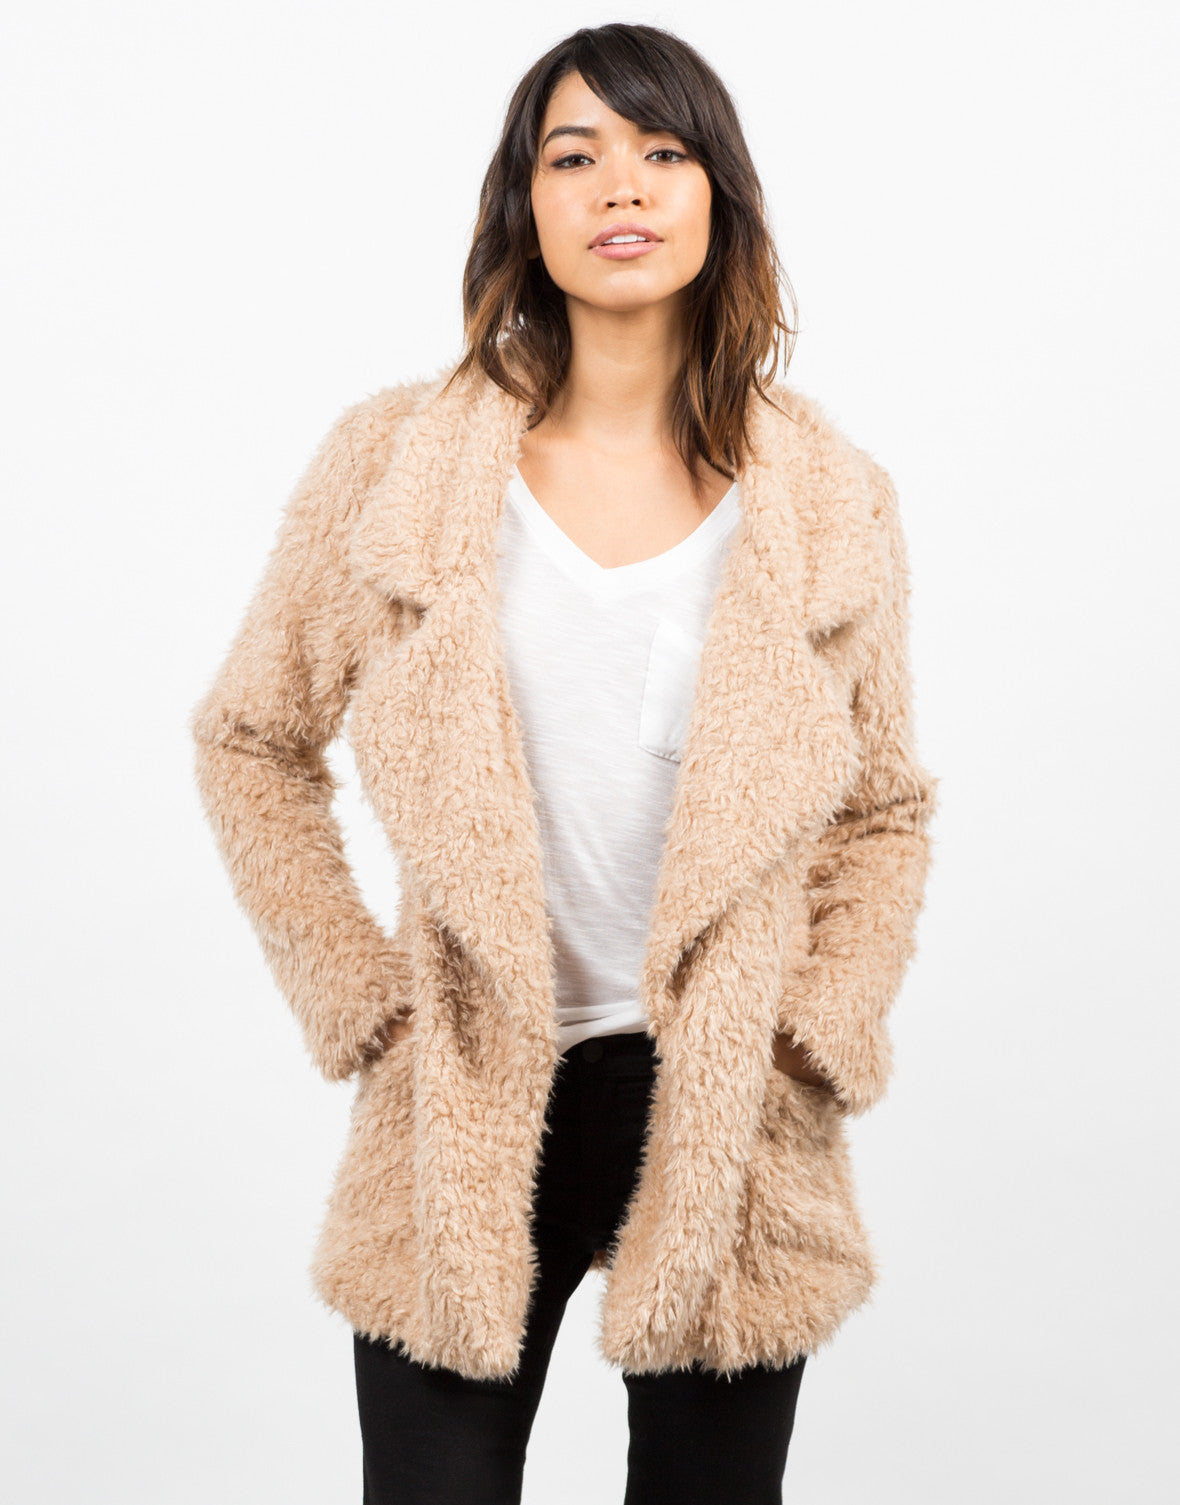 Front View of Shaggy Faux Fur Jacket